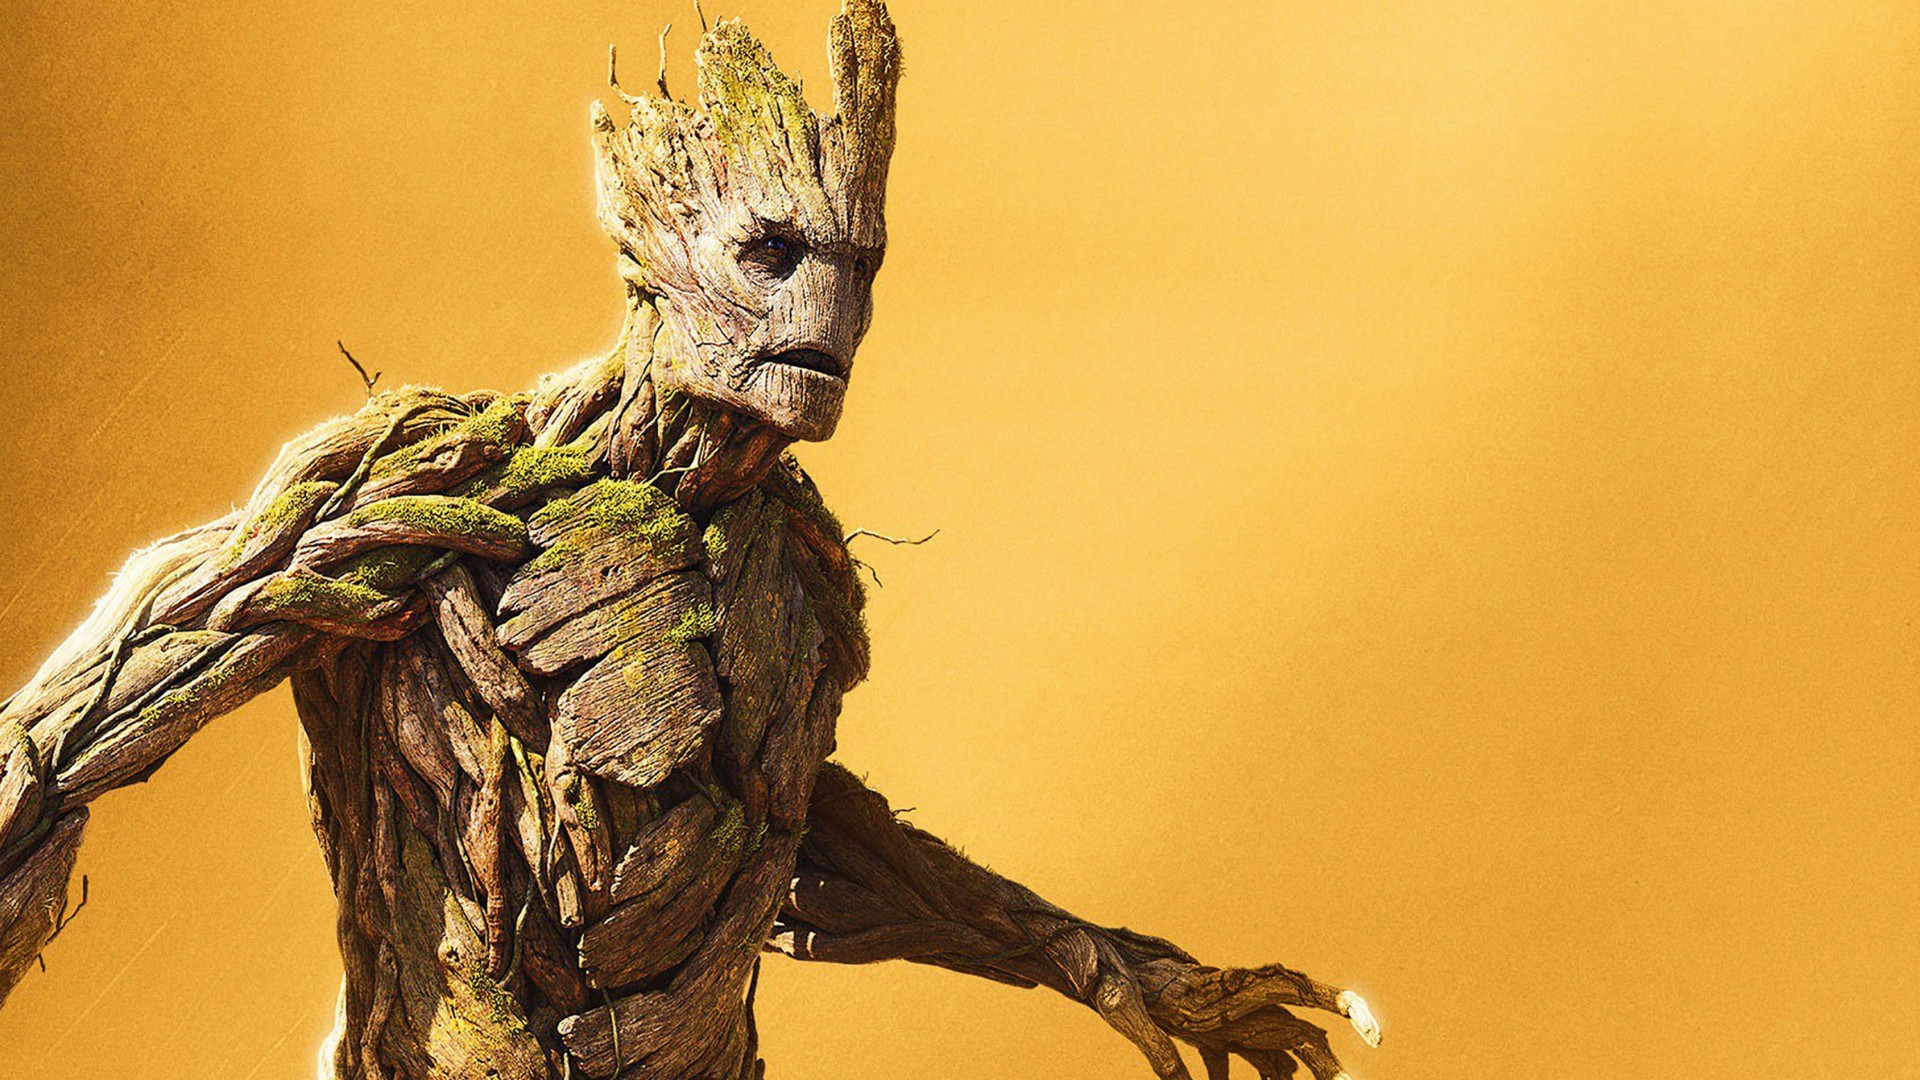 Hd 3d Wallpapers For Windows 8 Groot Avengers Infinity War Wallpapers Hd Wallpapers